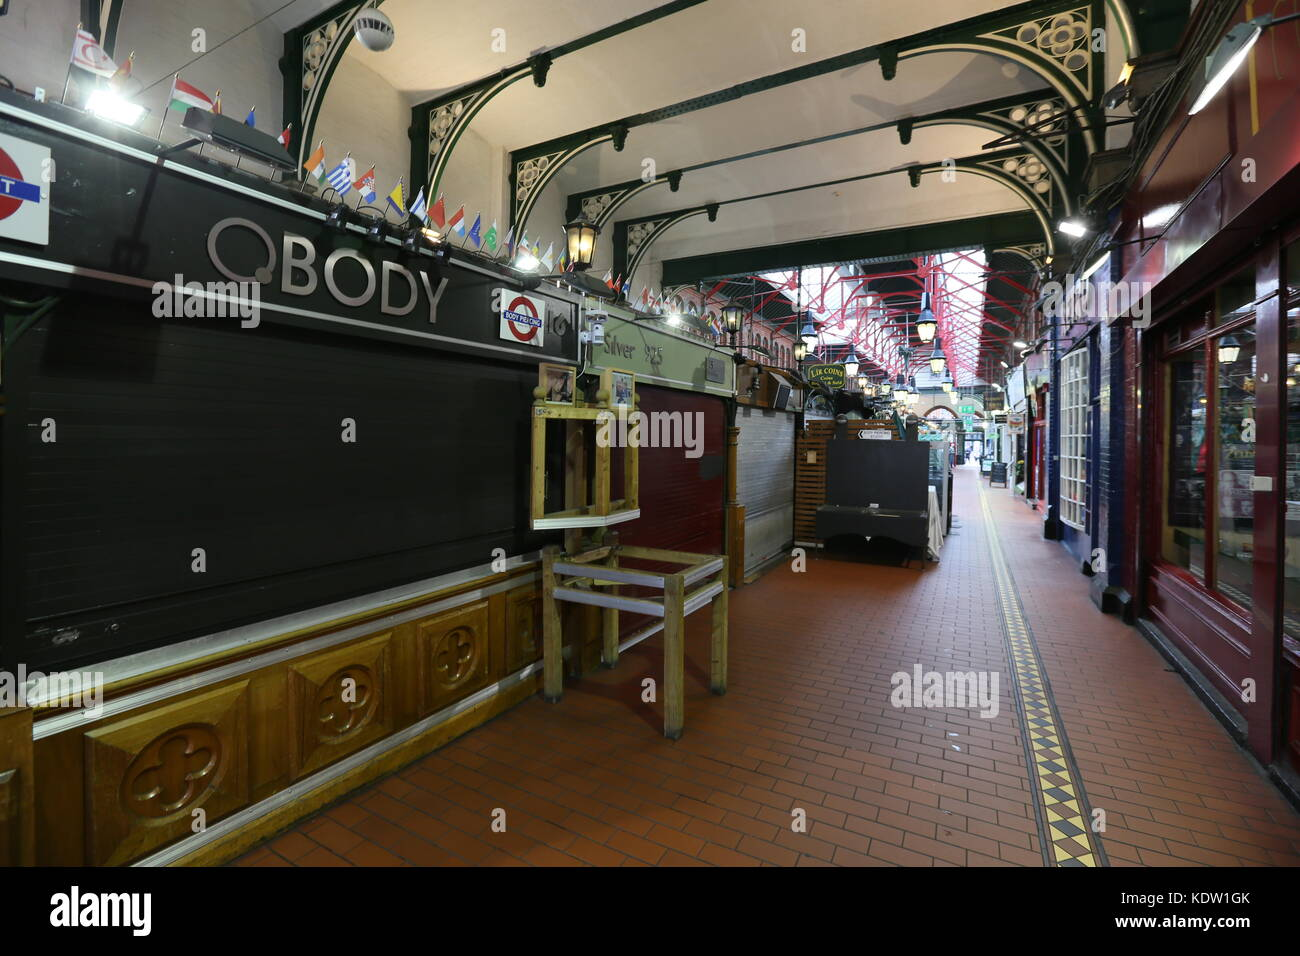 Dublin, Ireland. 16th Oct, 2017. The George's Street Arcade shown empty prior to the arrival of Storm Ophelia. - Stock Image